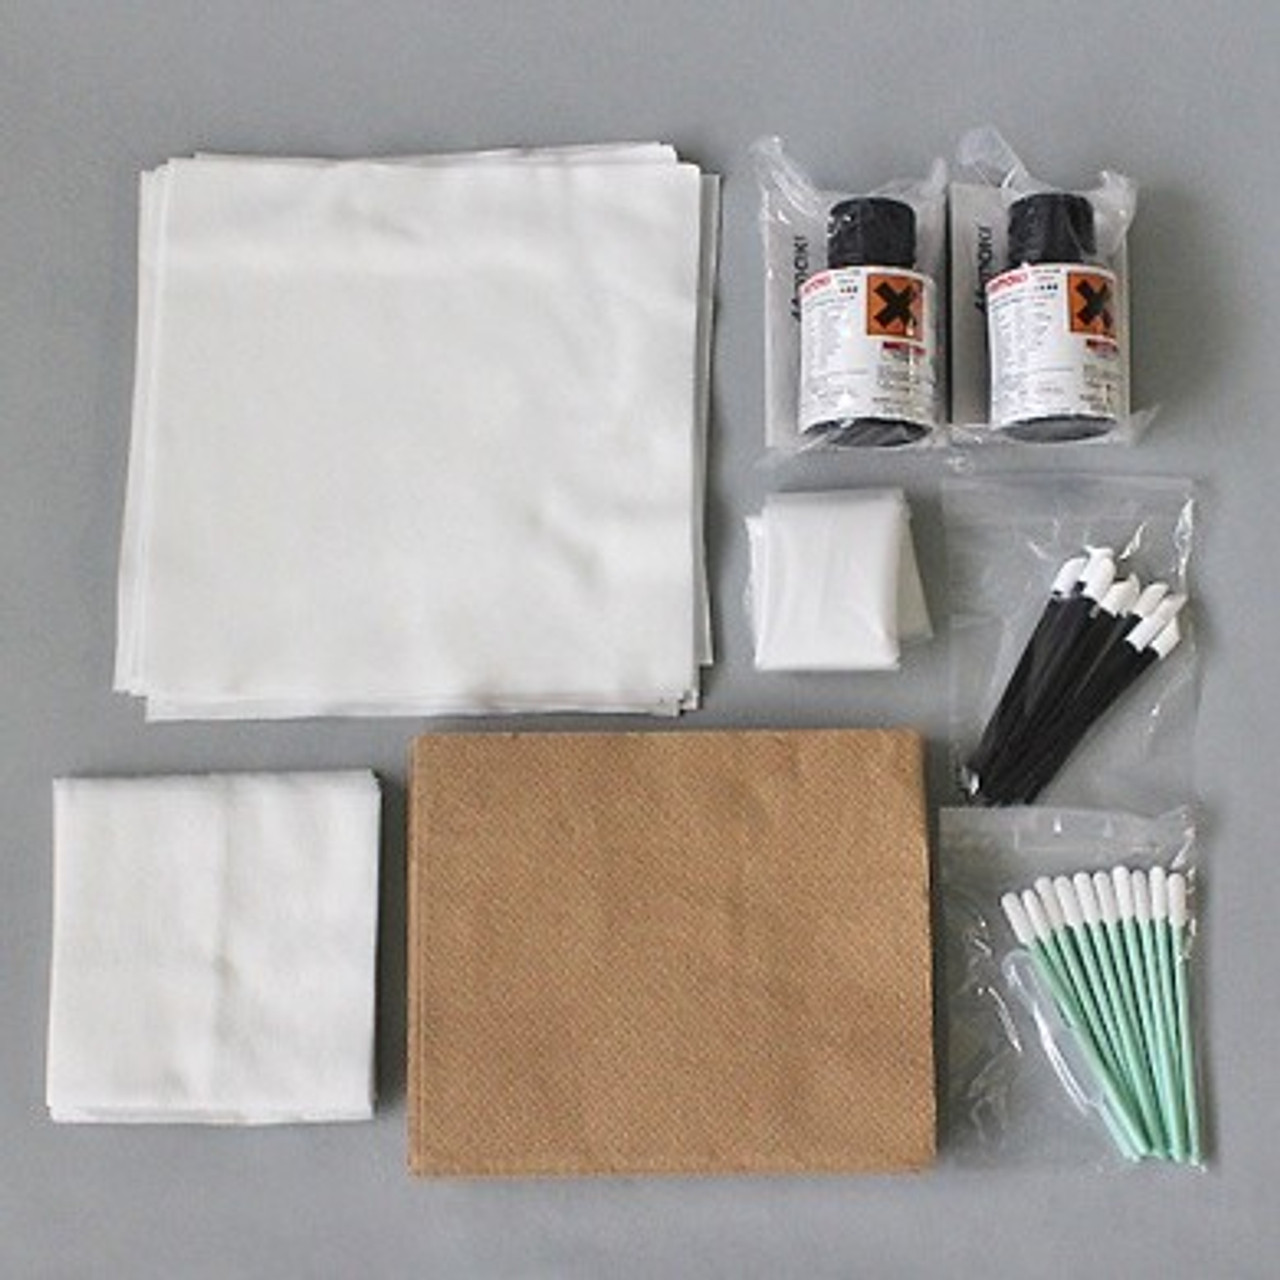 F-200/LF-200 Cleaning Kit SPC-0569